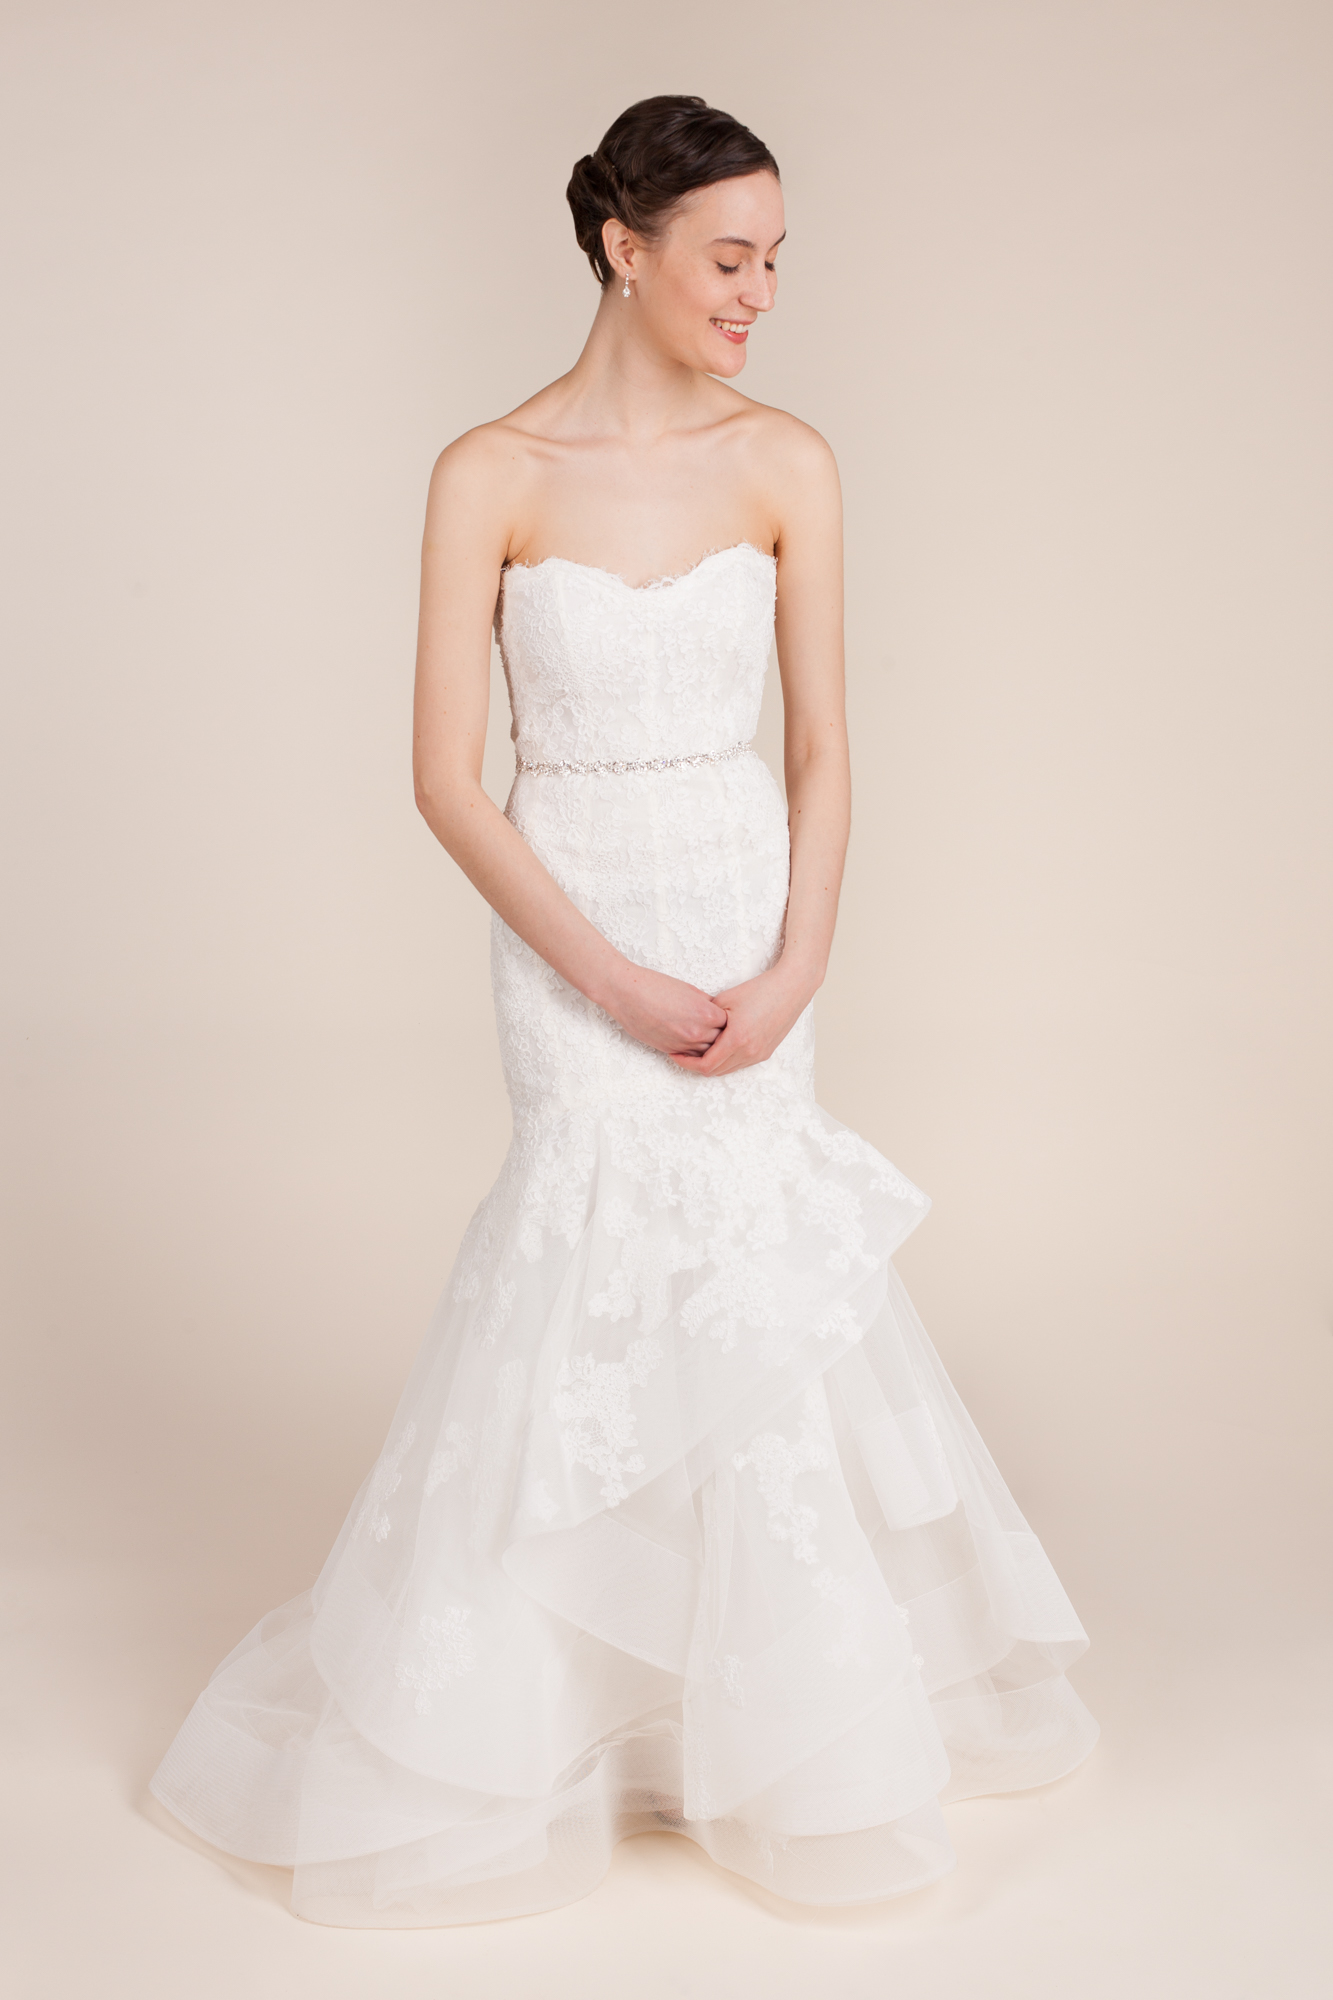 Monique lhuillier size  - $2495 - (50% OFF)